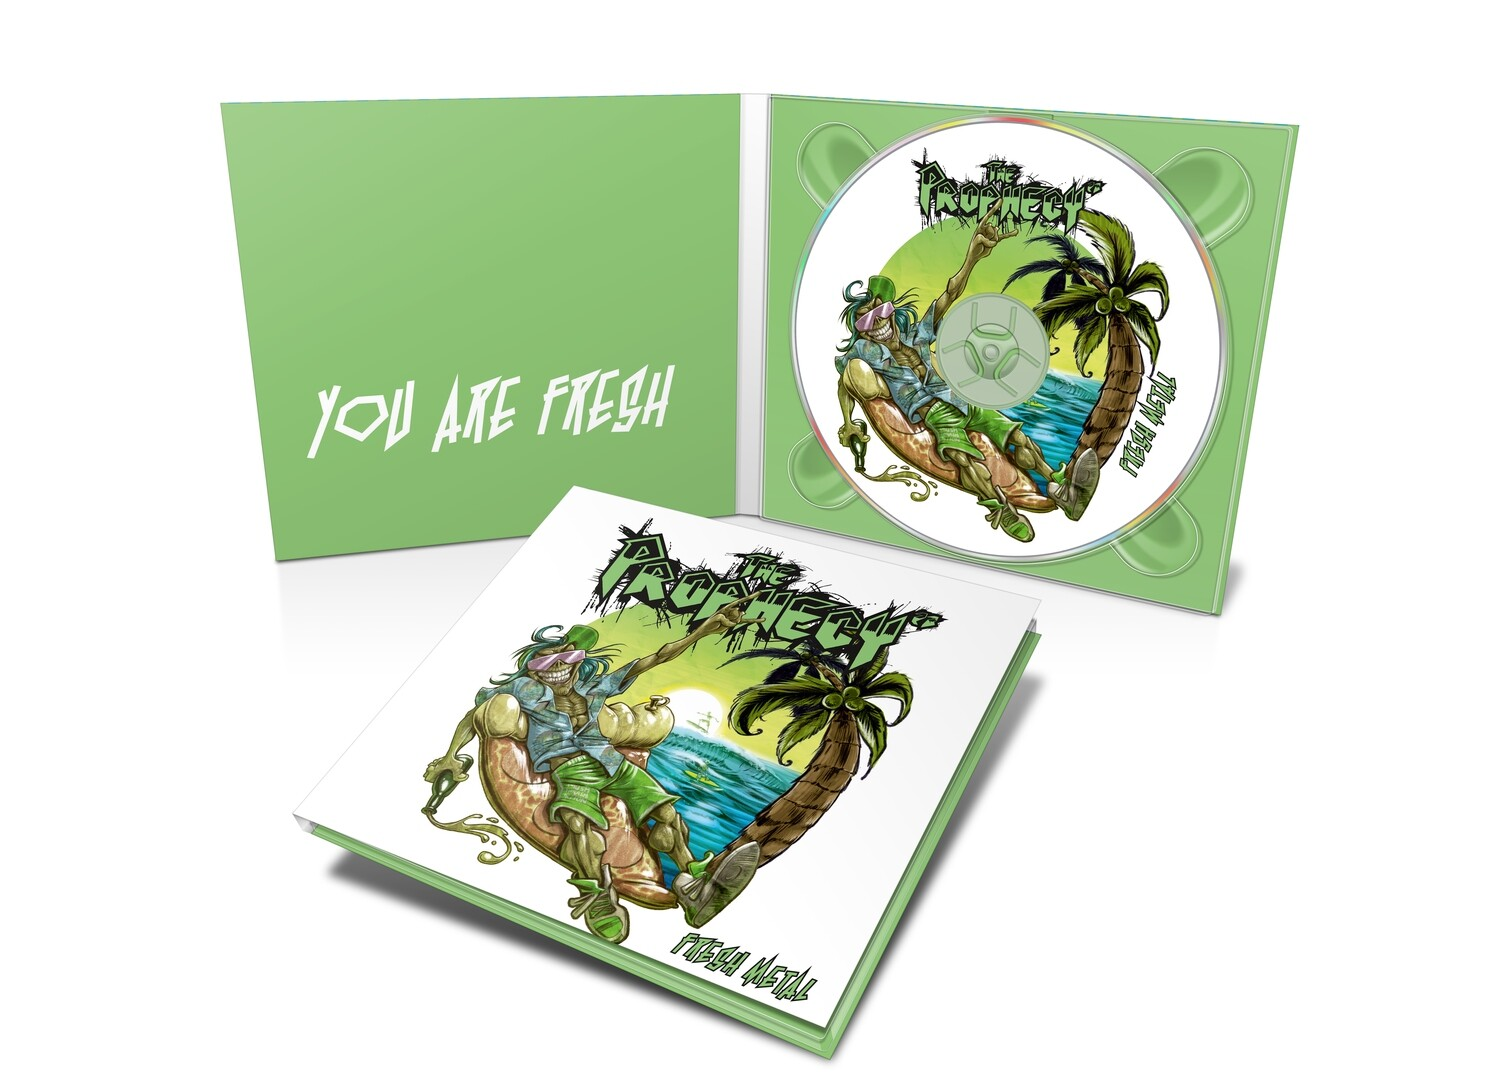 FRESH METAL - CD Digipack